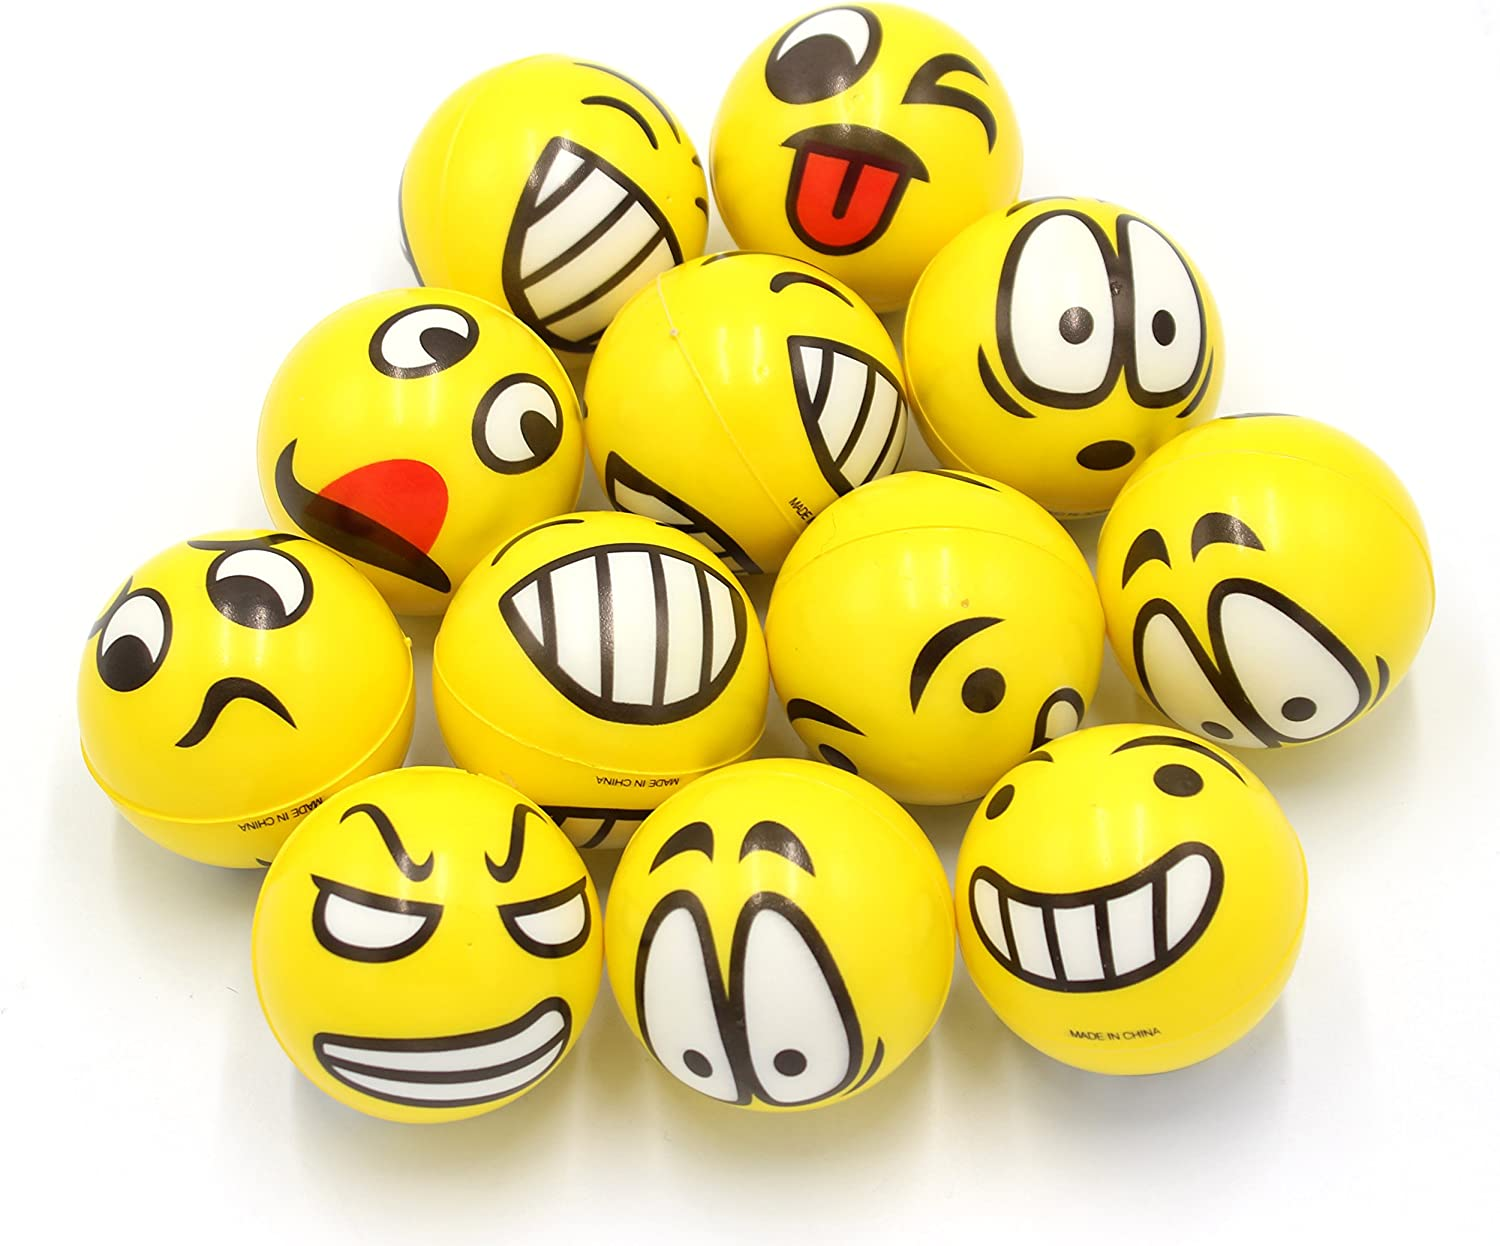 FIVOENDAR 2.5 inch Yellow Kids Adults Favor at School Fun Face Stress Balls Cute Hand Wrist Stress Reliefs Squeeze Balls - School Office Holiday Gift Party Favors (12 Pack)